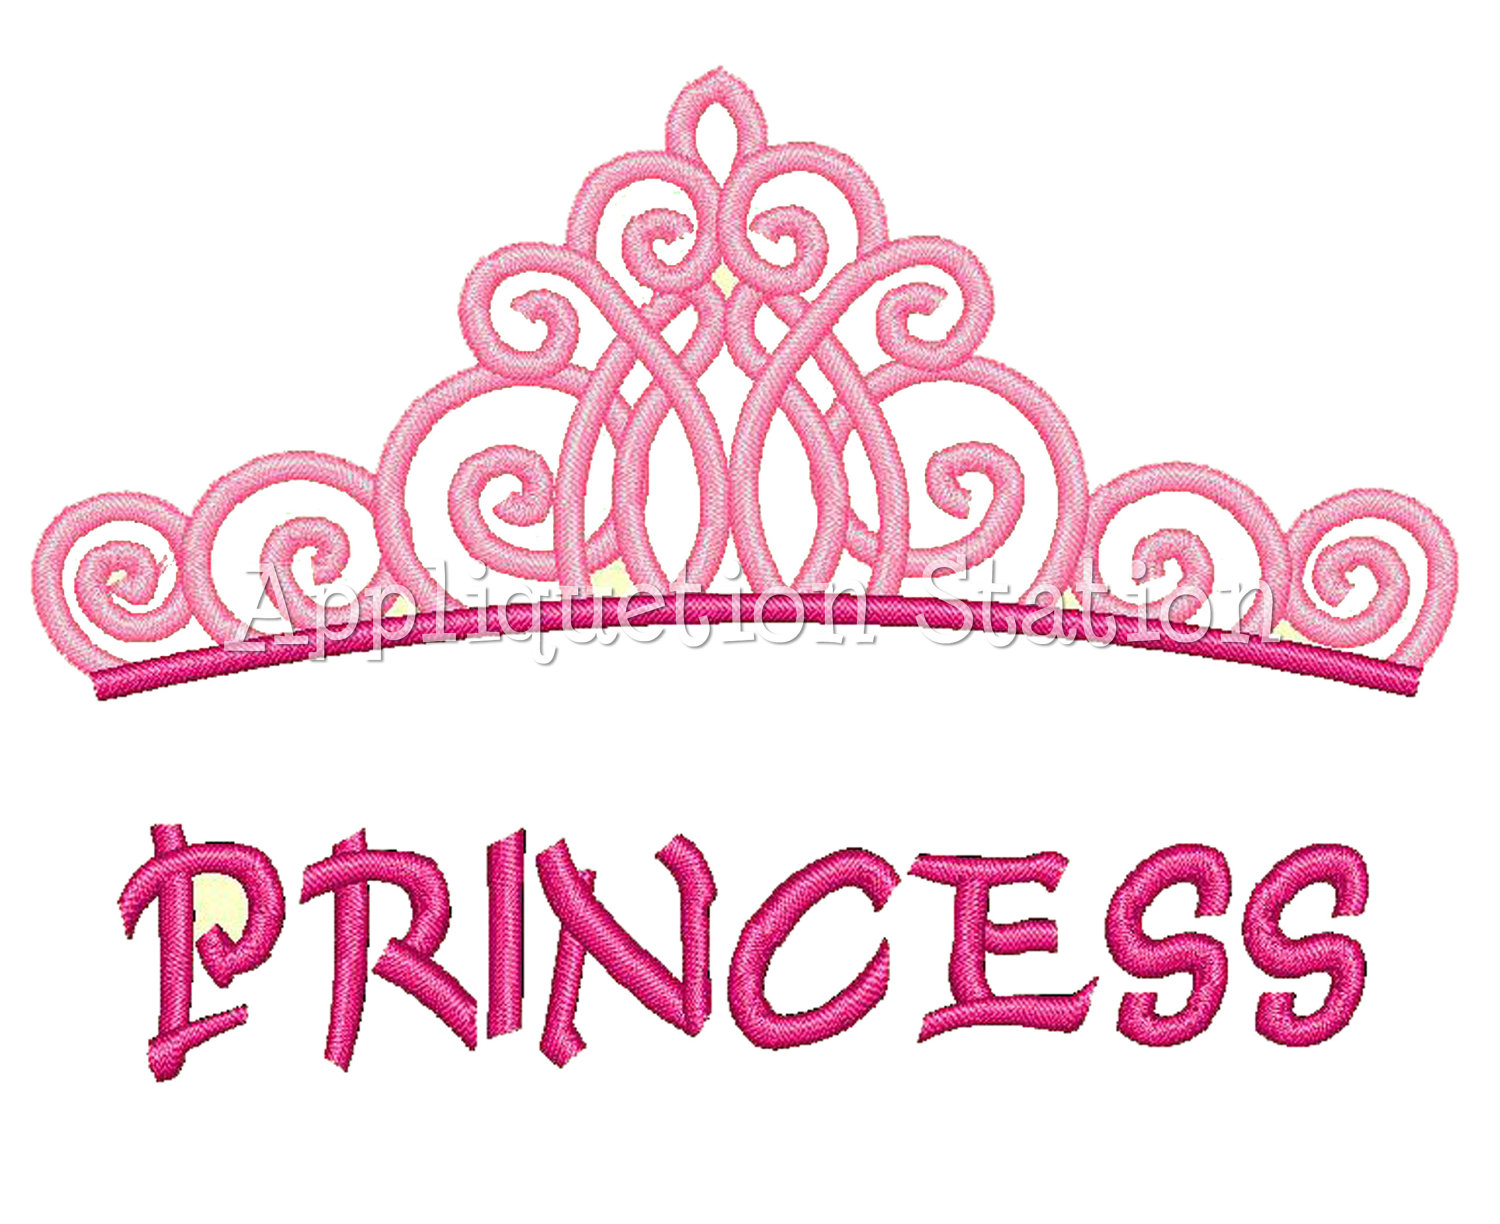 Tiaras And Crowns Clip Art Images Thecelebritypix